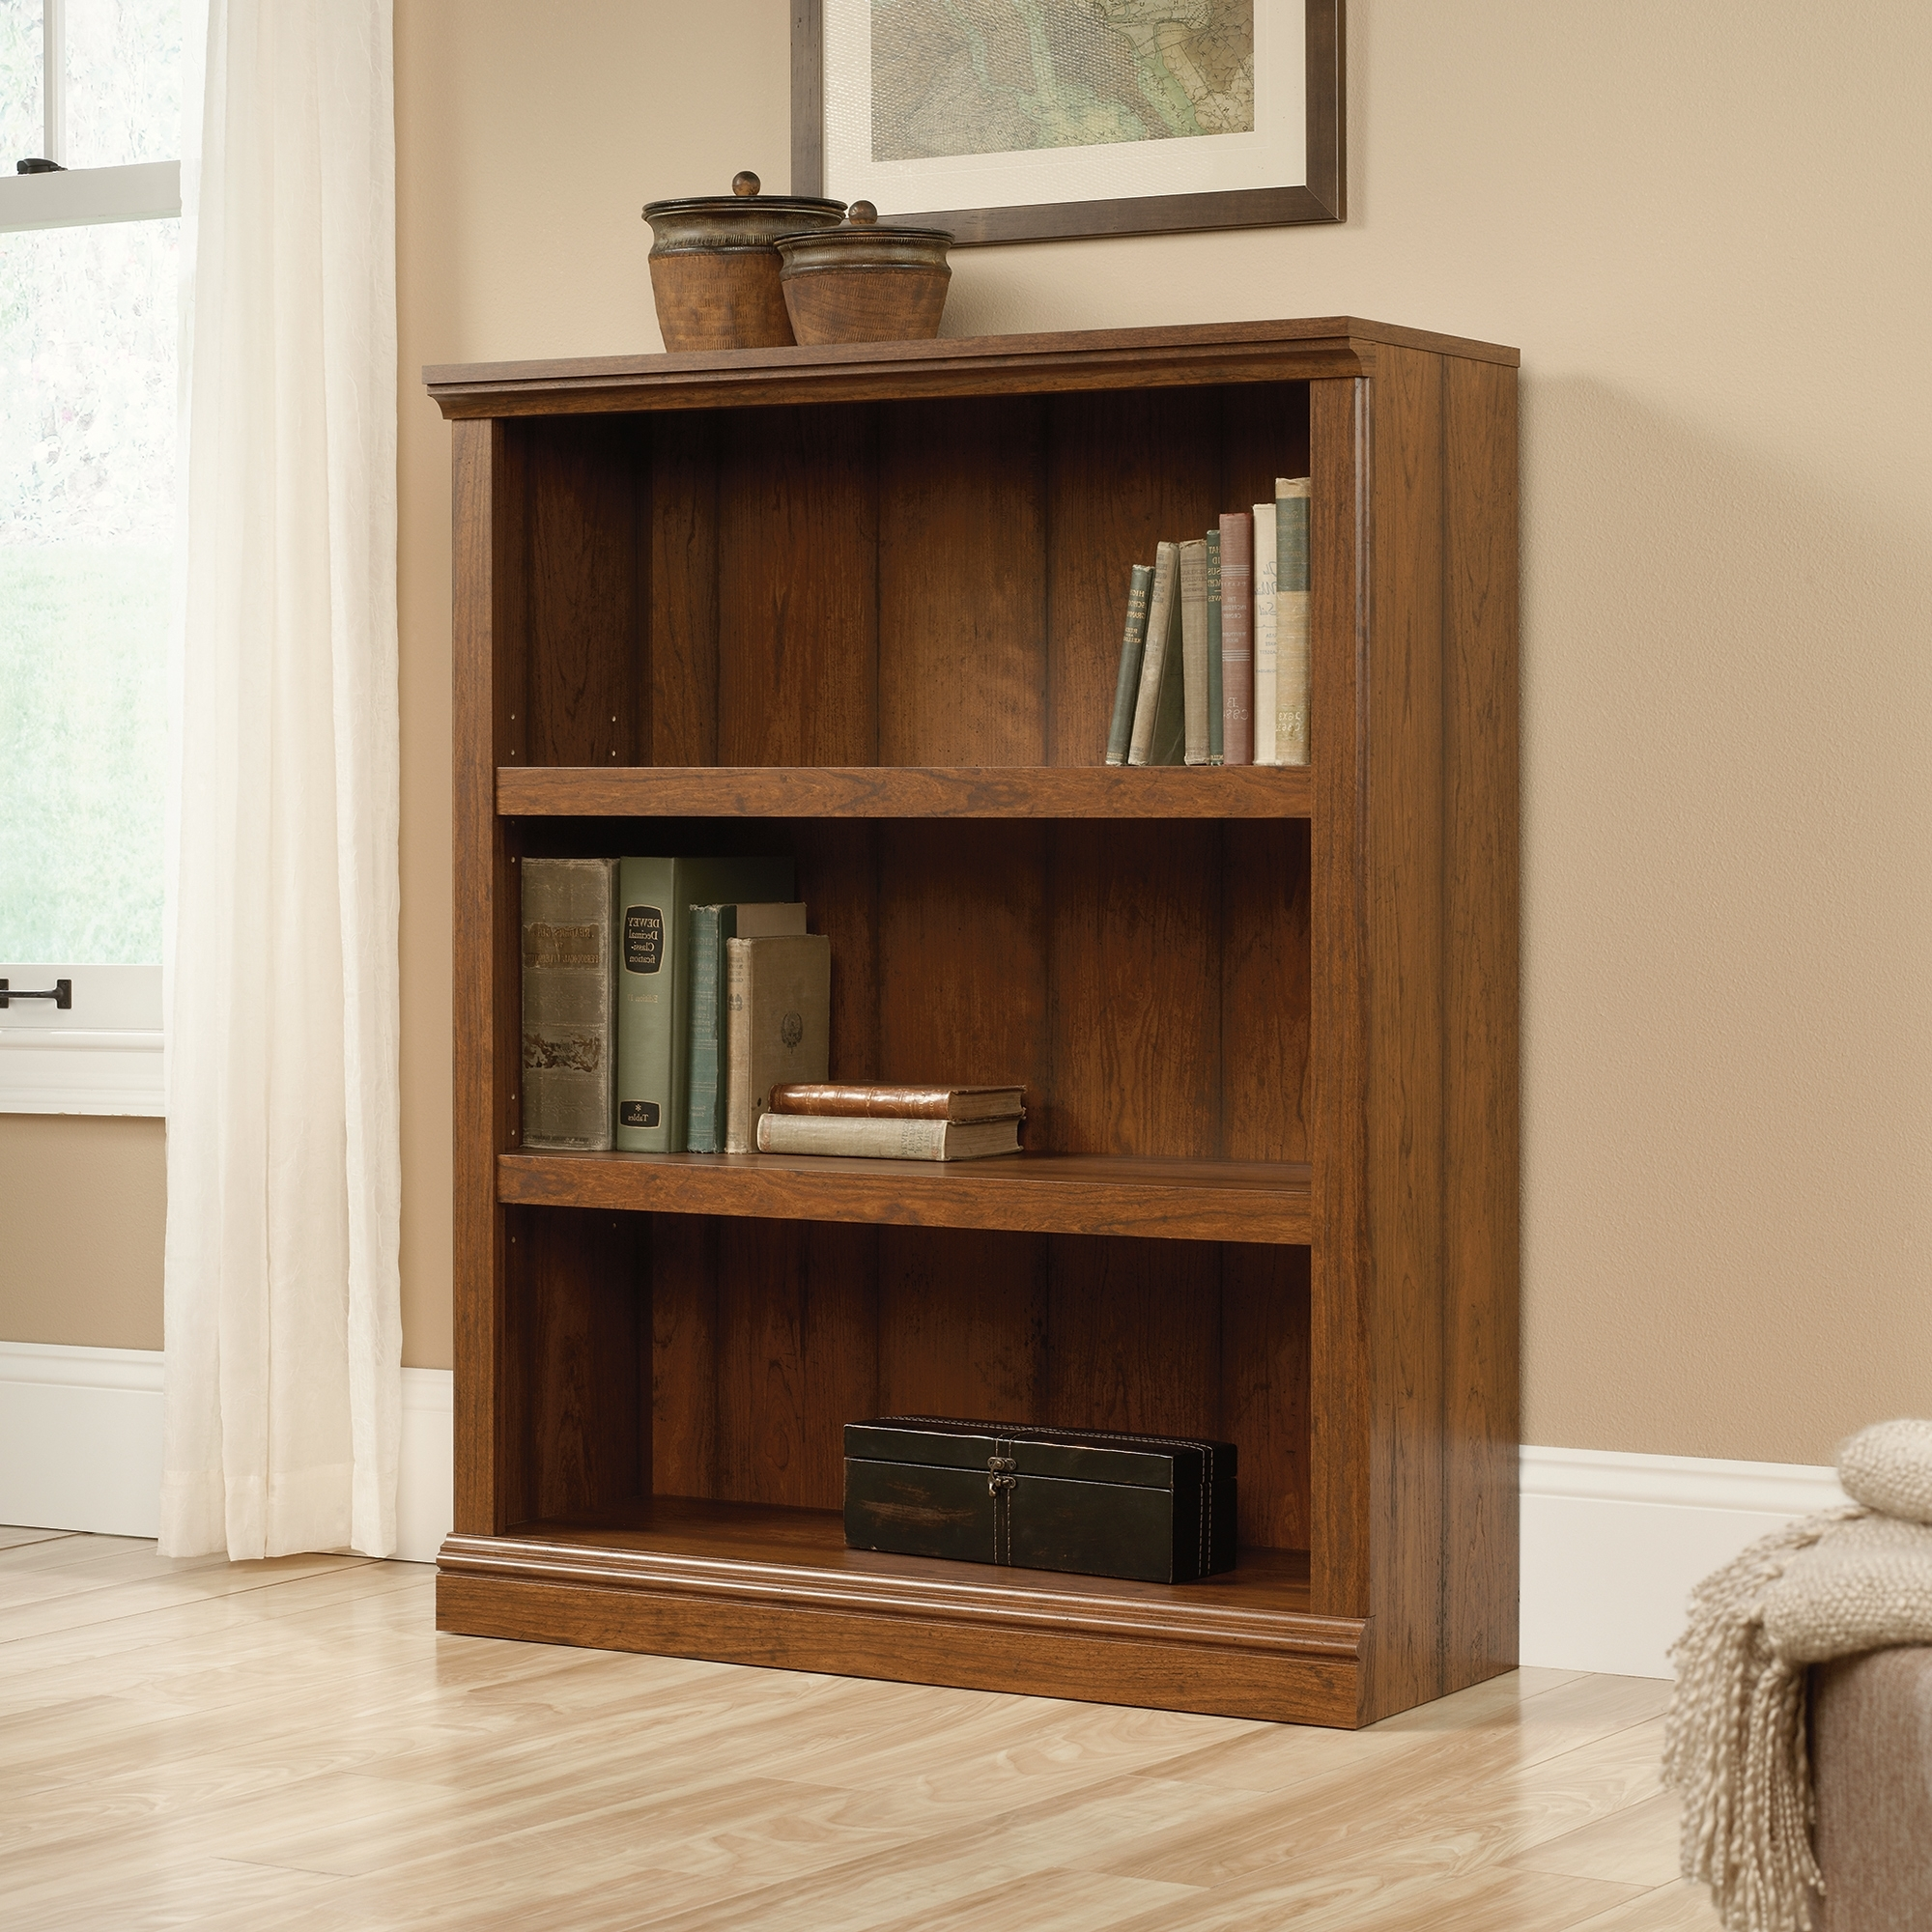 Well Liked Literarywondrous Sauder Bookcase Photos Concept Select Shelf Intended For Sears Bookcases (View 15 of 15)